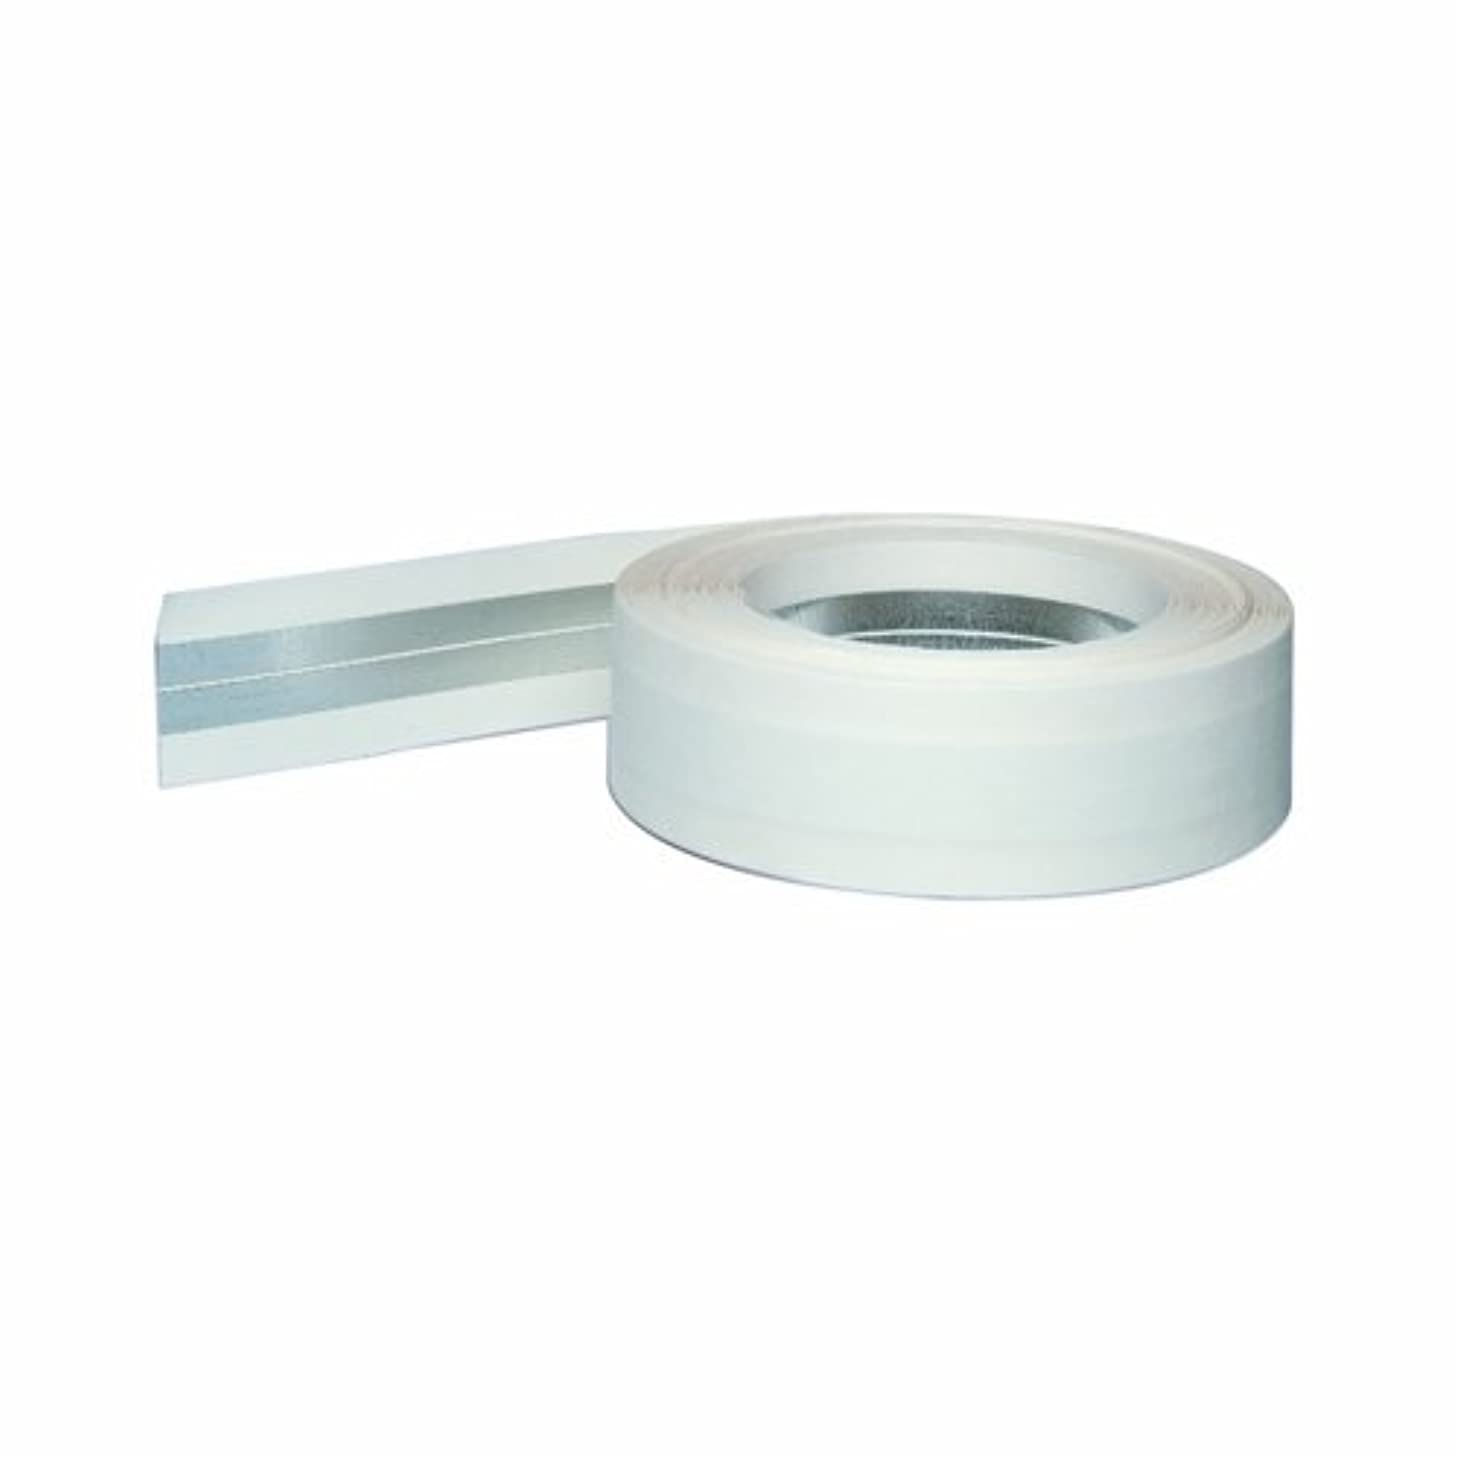 Bon 15-326 100-Feet by 2-Inch Sure Corner Drywall Tape